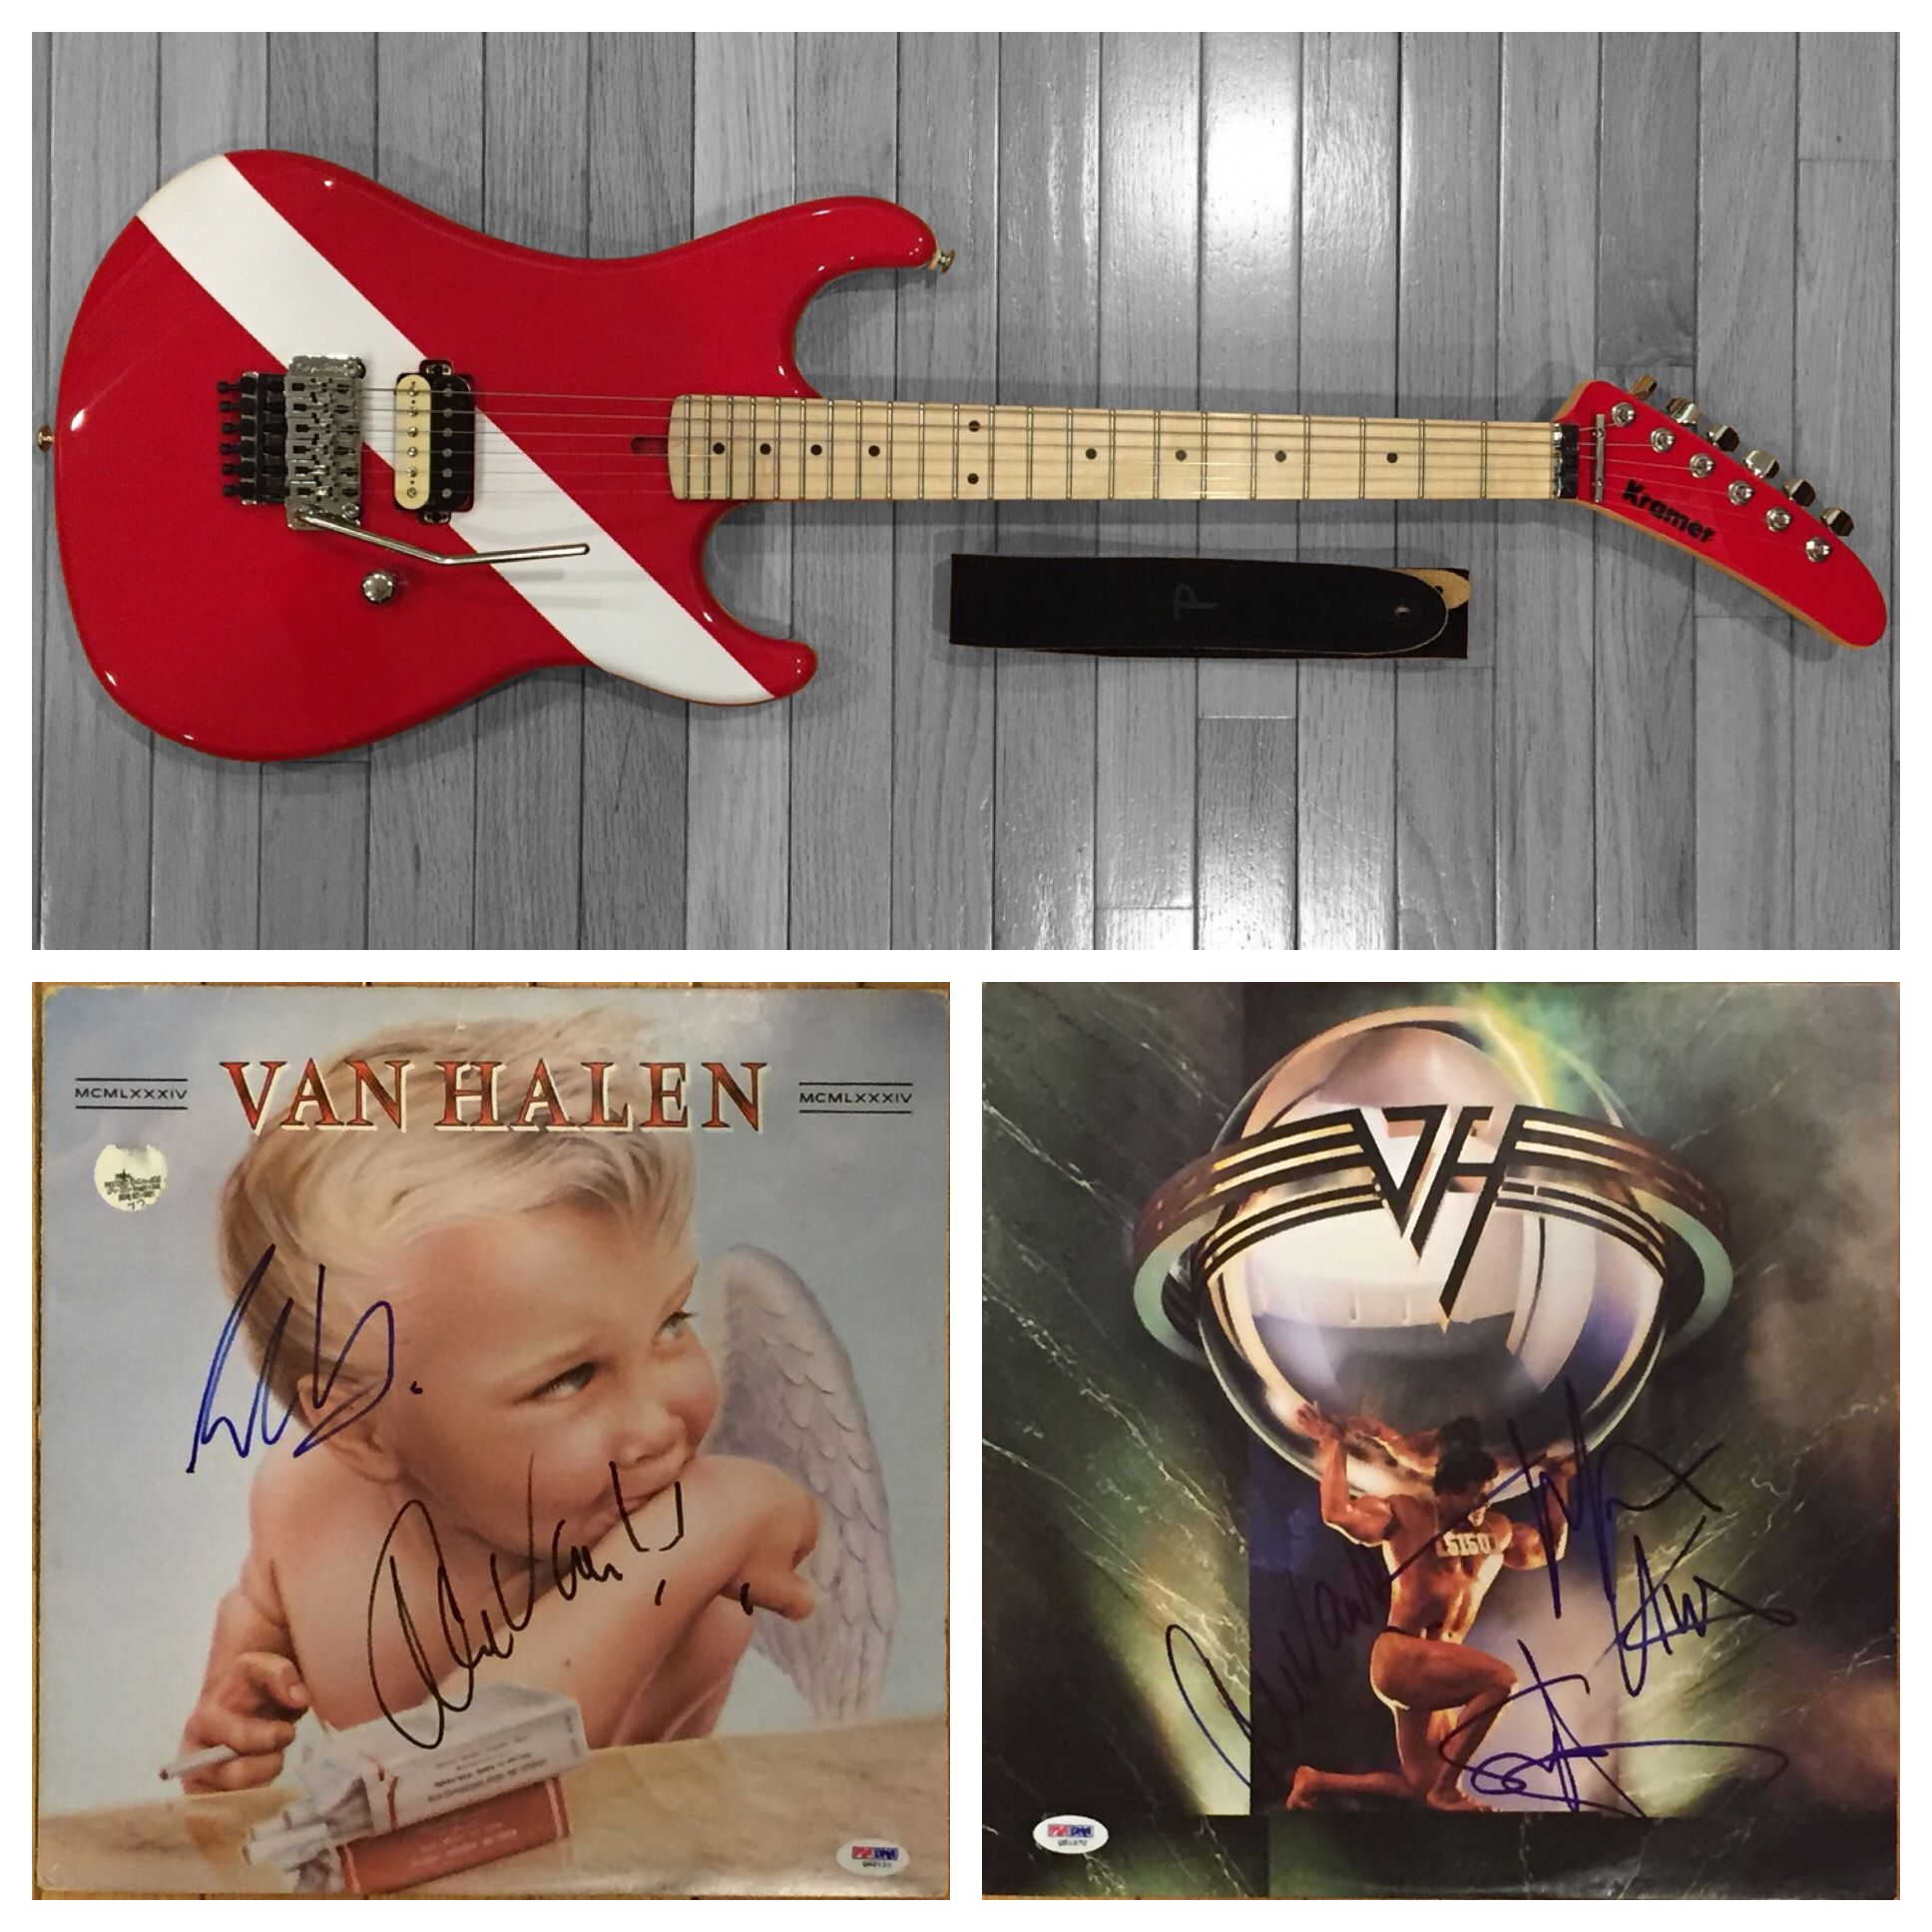 Kramer 84 Baretta Diver Down Electric Guitar With A Signed Copy Of Van Halen S 1984 Album With Alex Eddie Van Halen Signatures And A Signed Copy Of The 5150